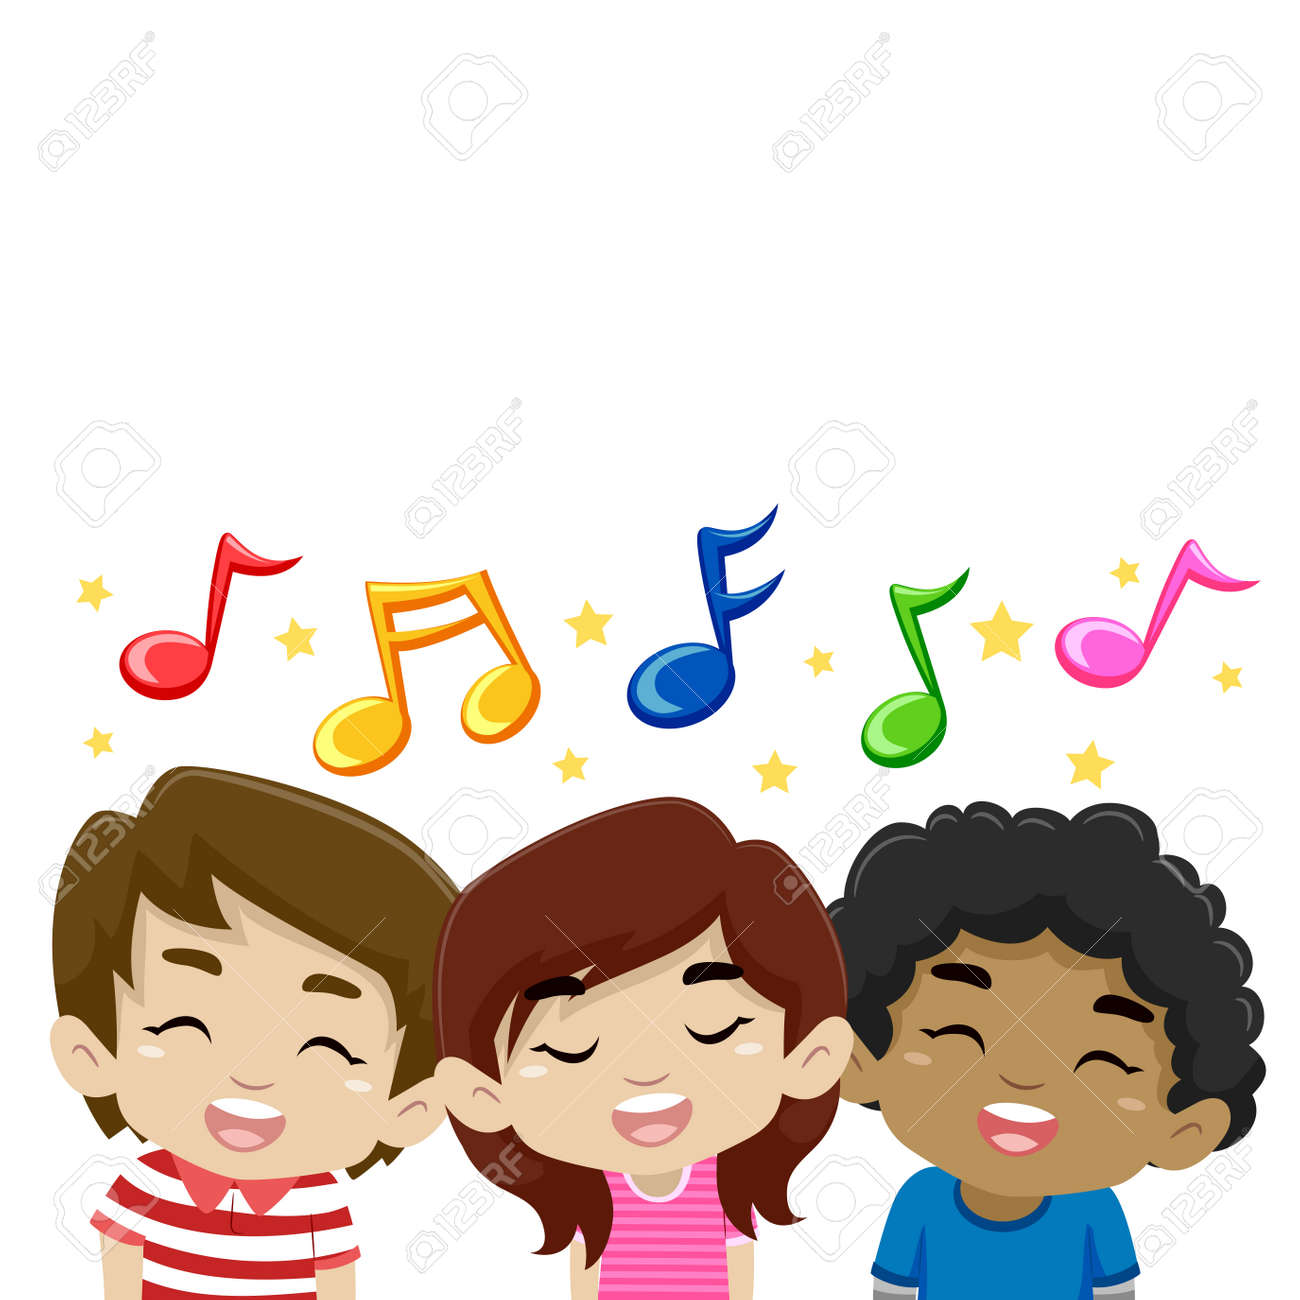 Vector Illustration of Kids Singing with Music Notes - 55828954